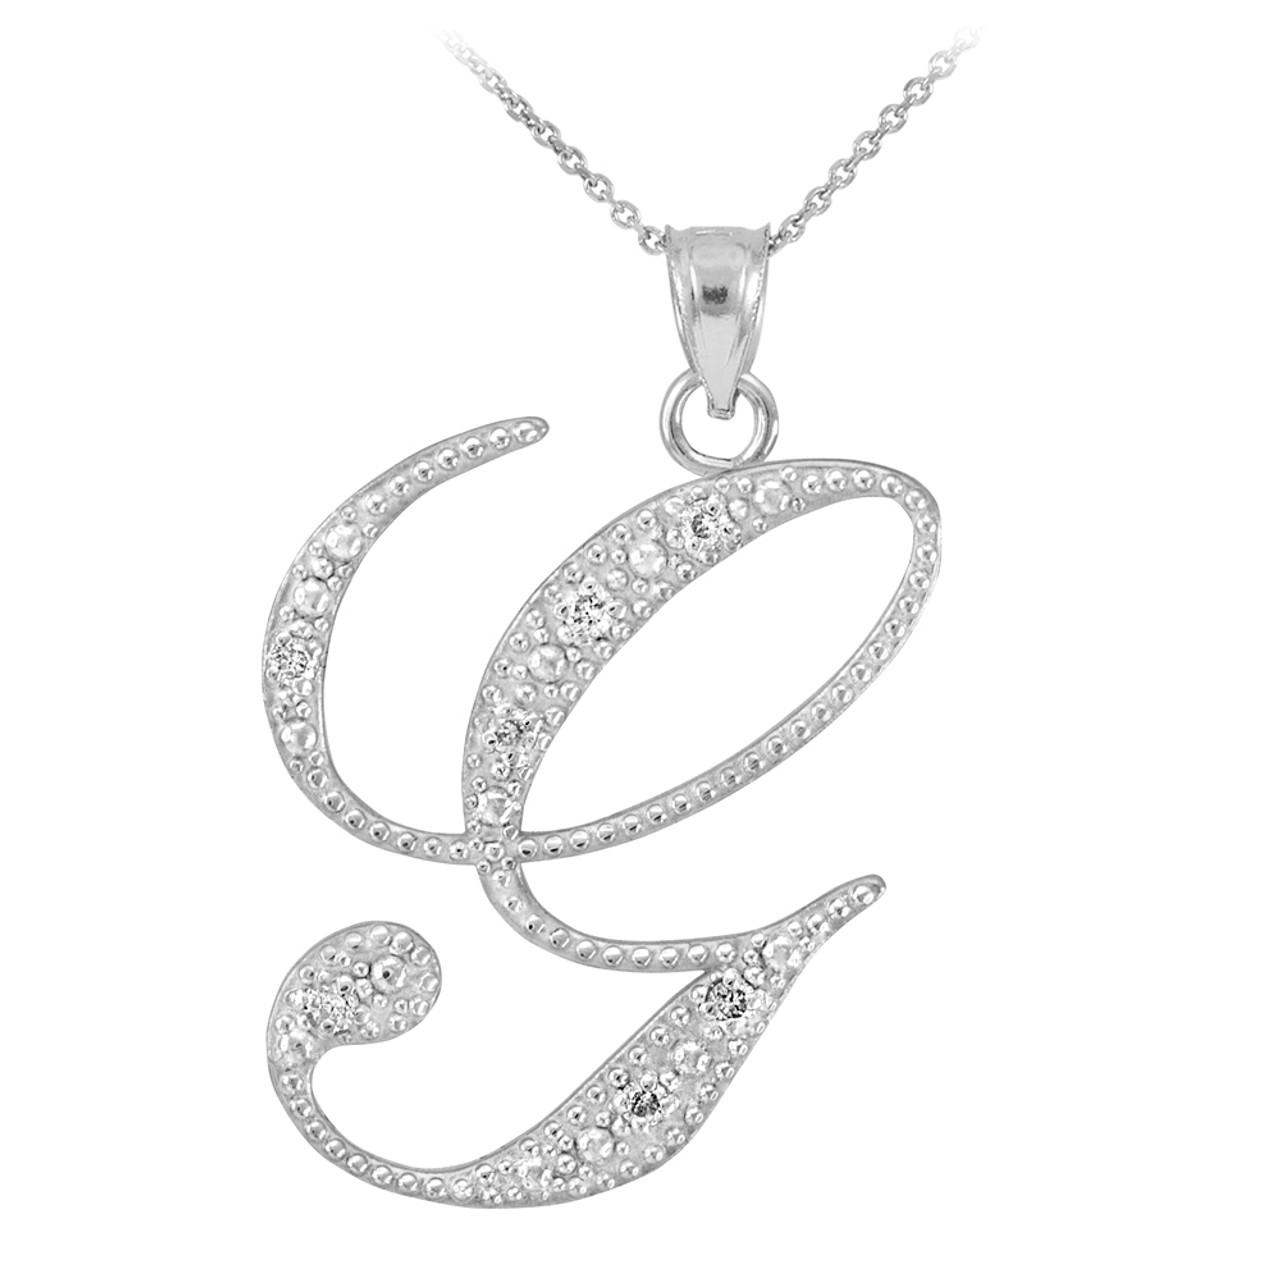 White gold letter script g diamond initial pendant necklace 14k white gold letter script g diamond initial pendant necklace mozeypictures Image collections